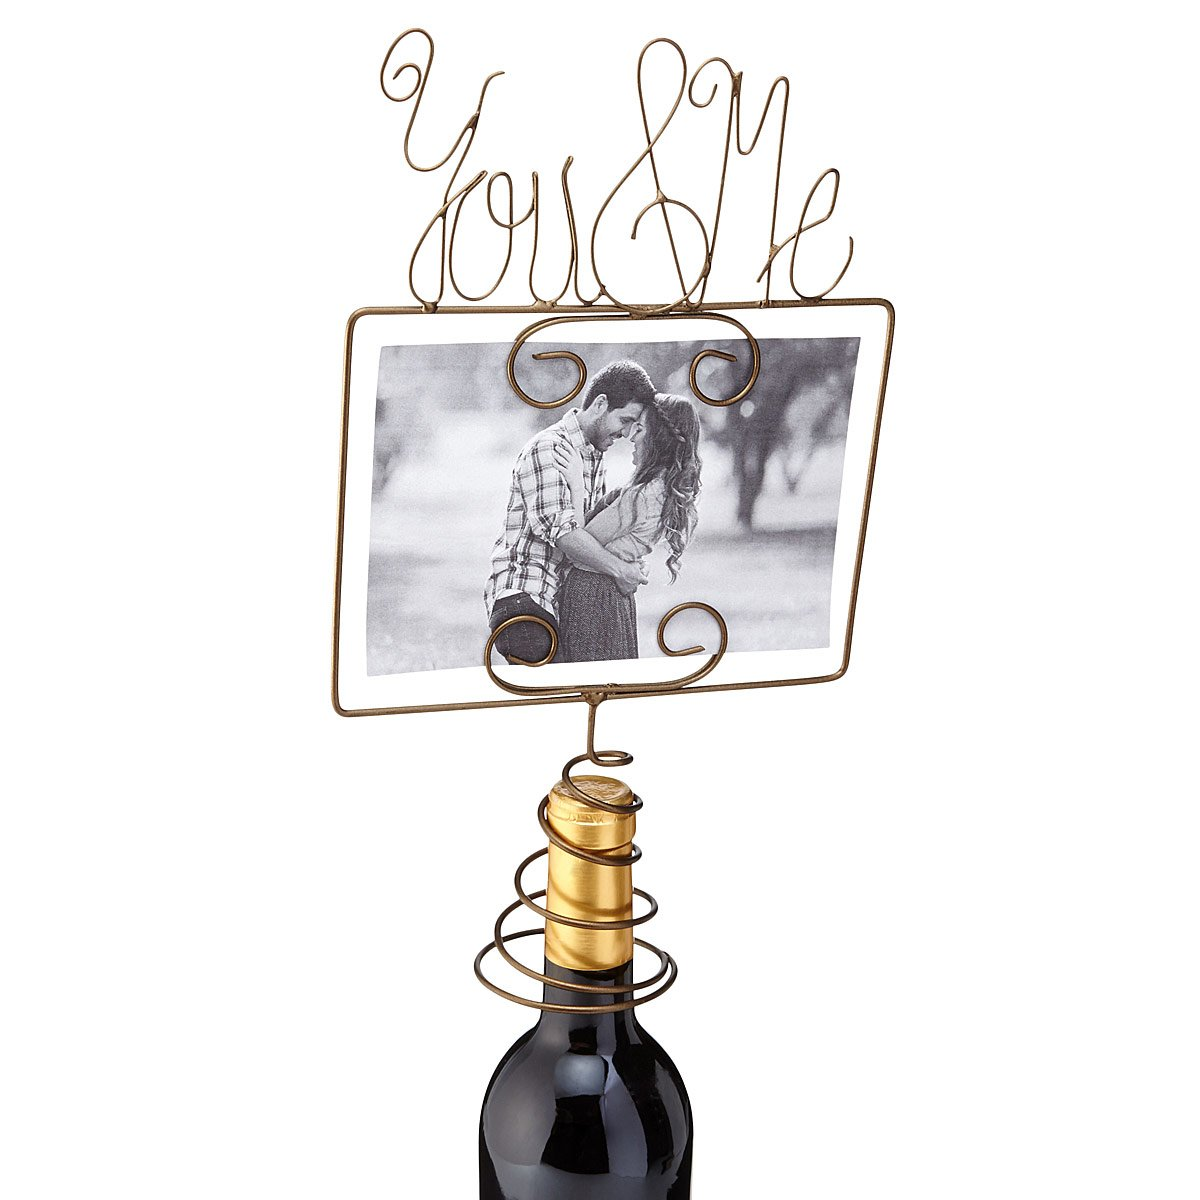 Top The Best Stuff In Your Wine Rack With This Touching Photo Frame For A  Truly Special Valentineu0027s Dinner.